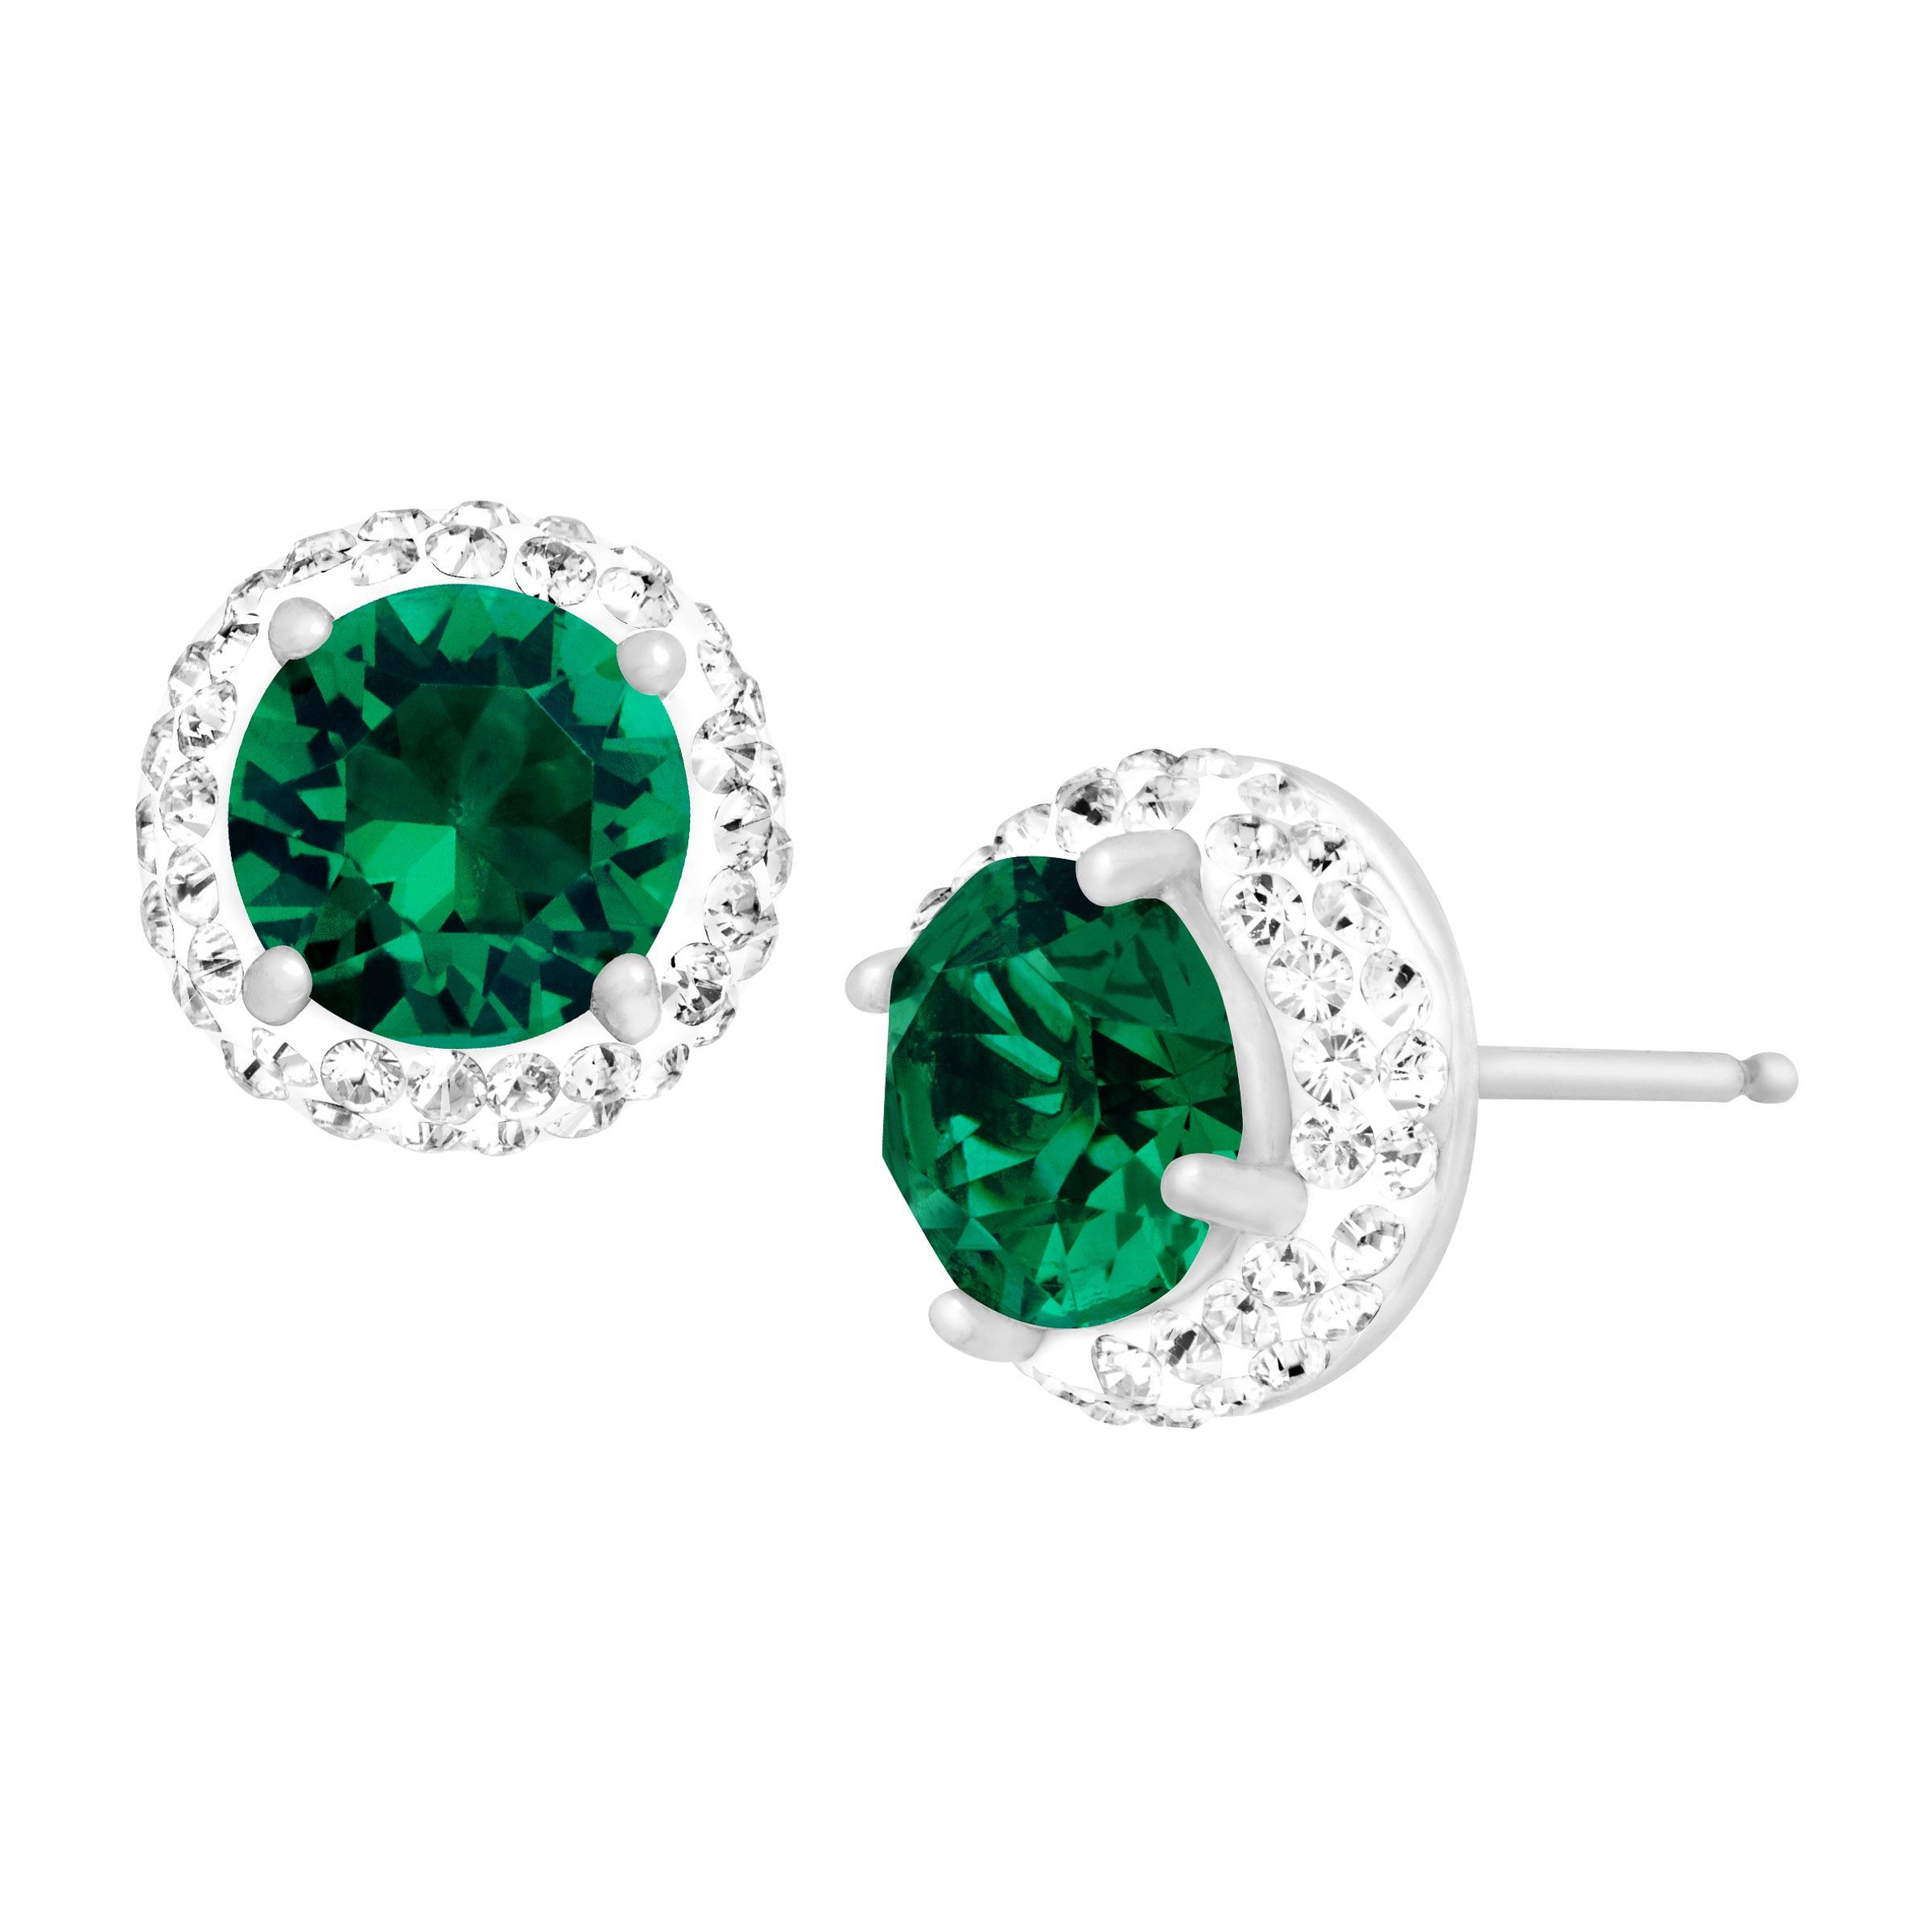 Crystaluxe May Earrings With Green Swarovski Crystals In Sterling Silver